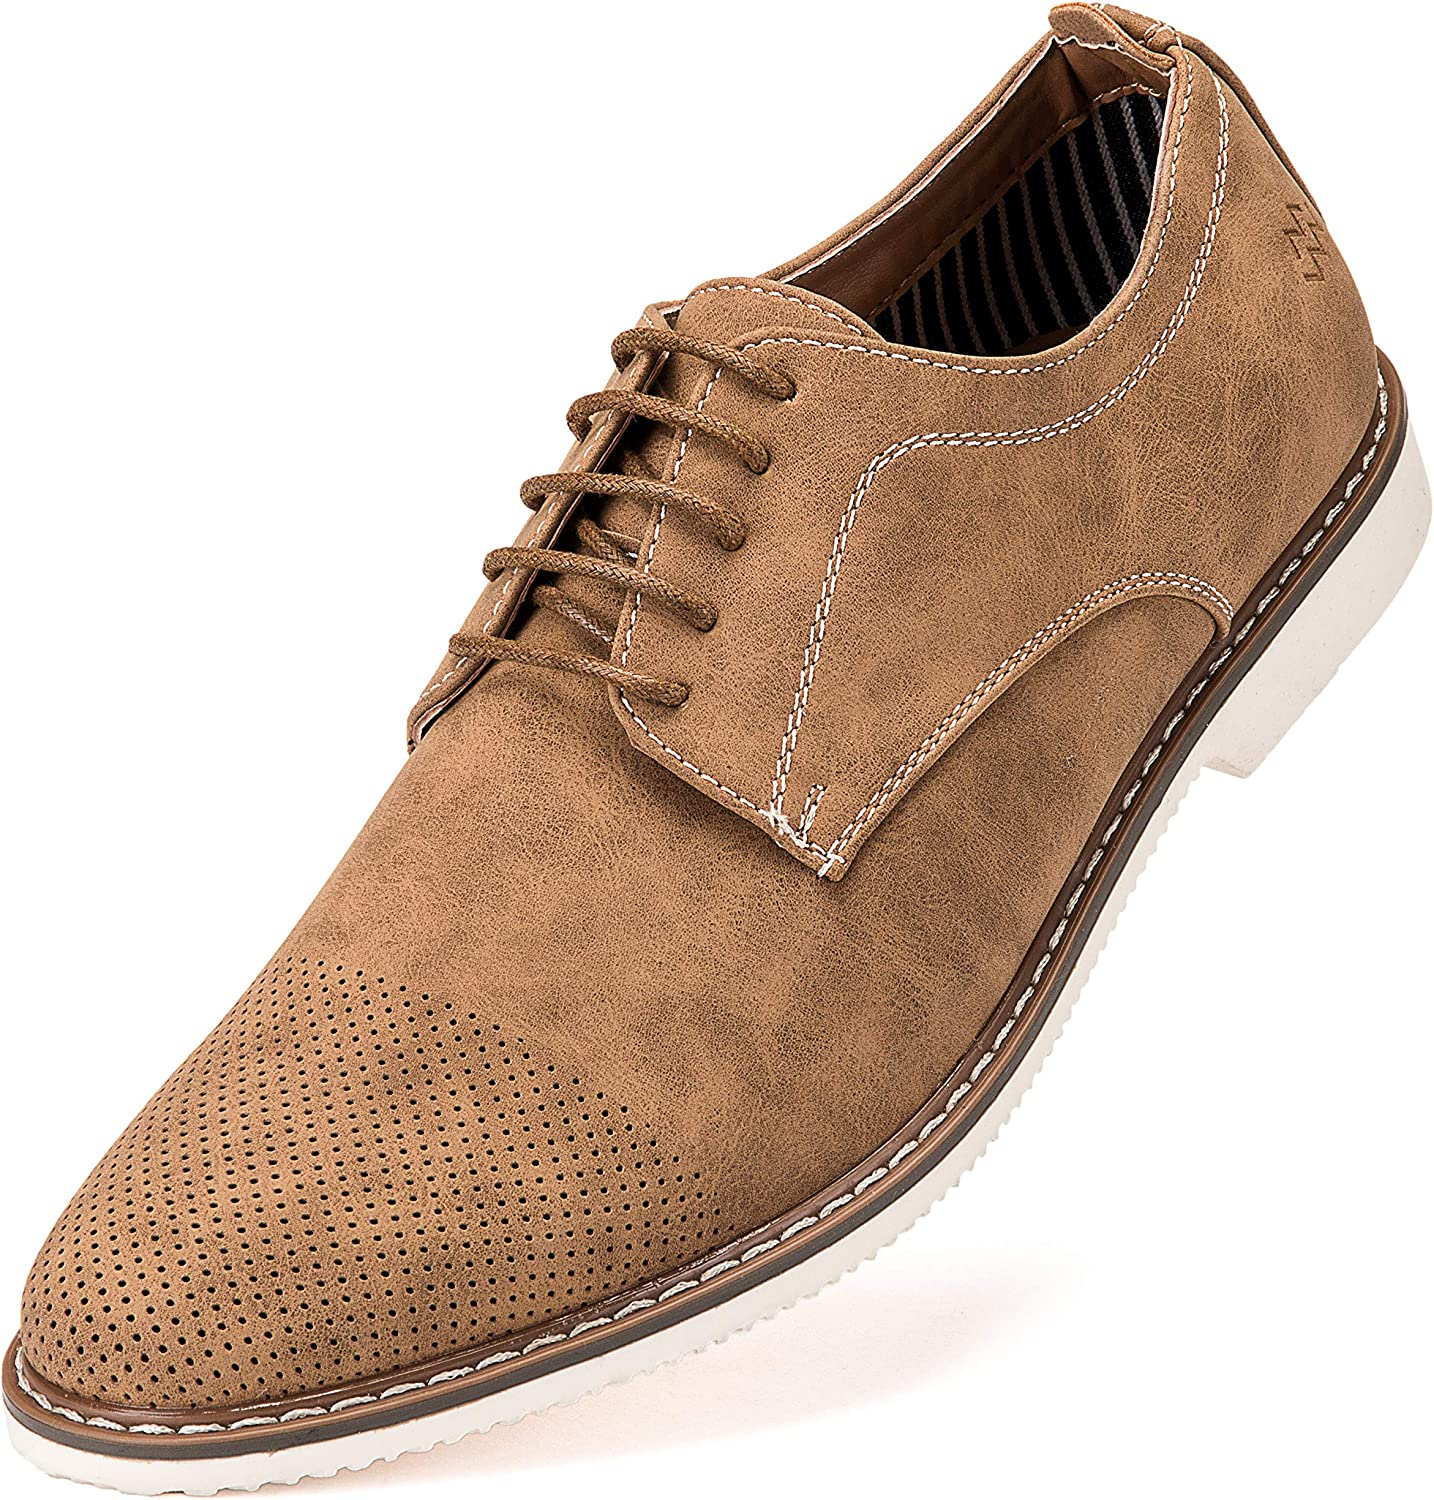 2019 Suede European style leather Shoes Men/'s oxfords Casual Multi Size Fashion